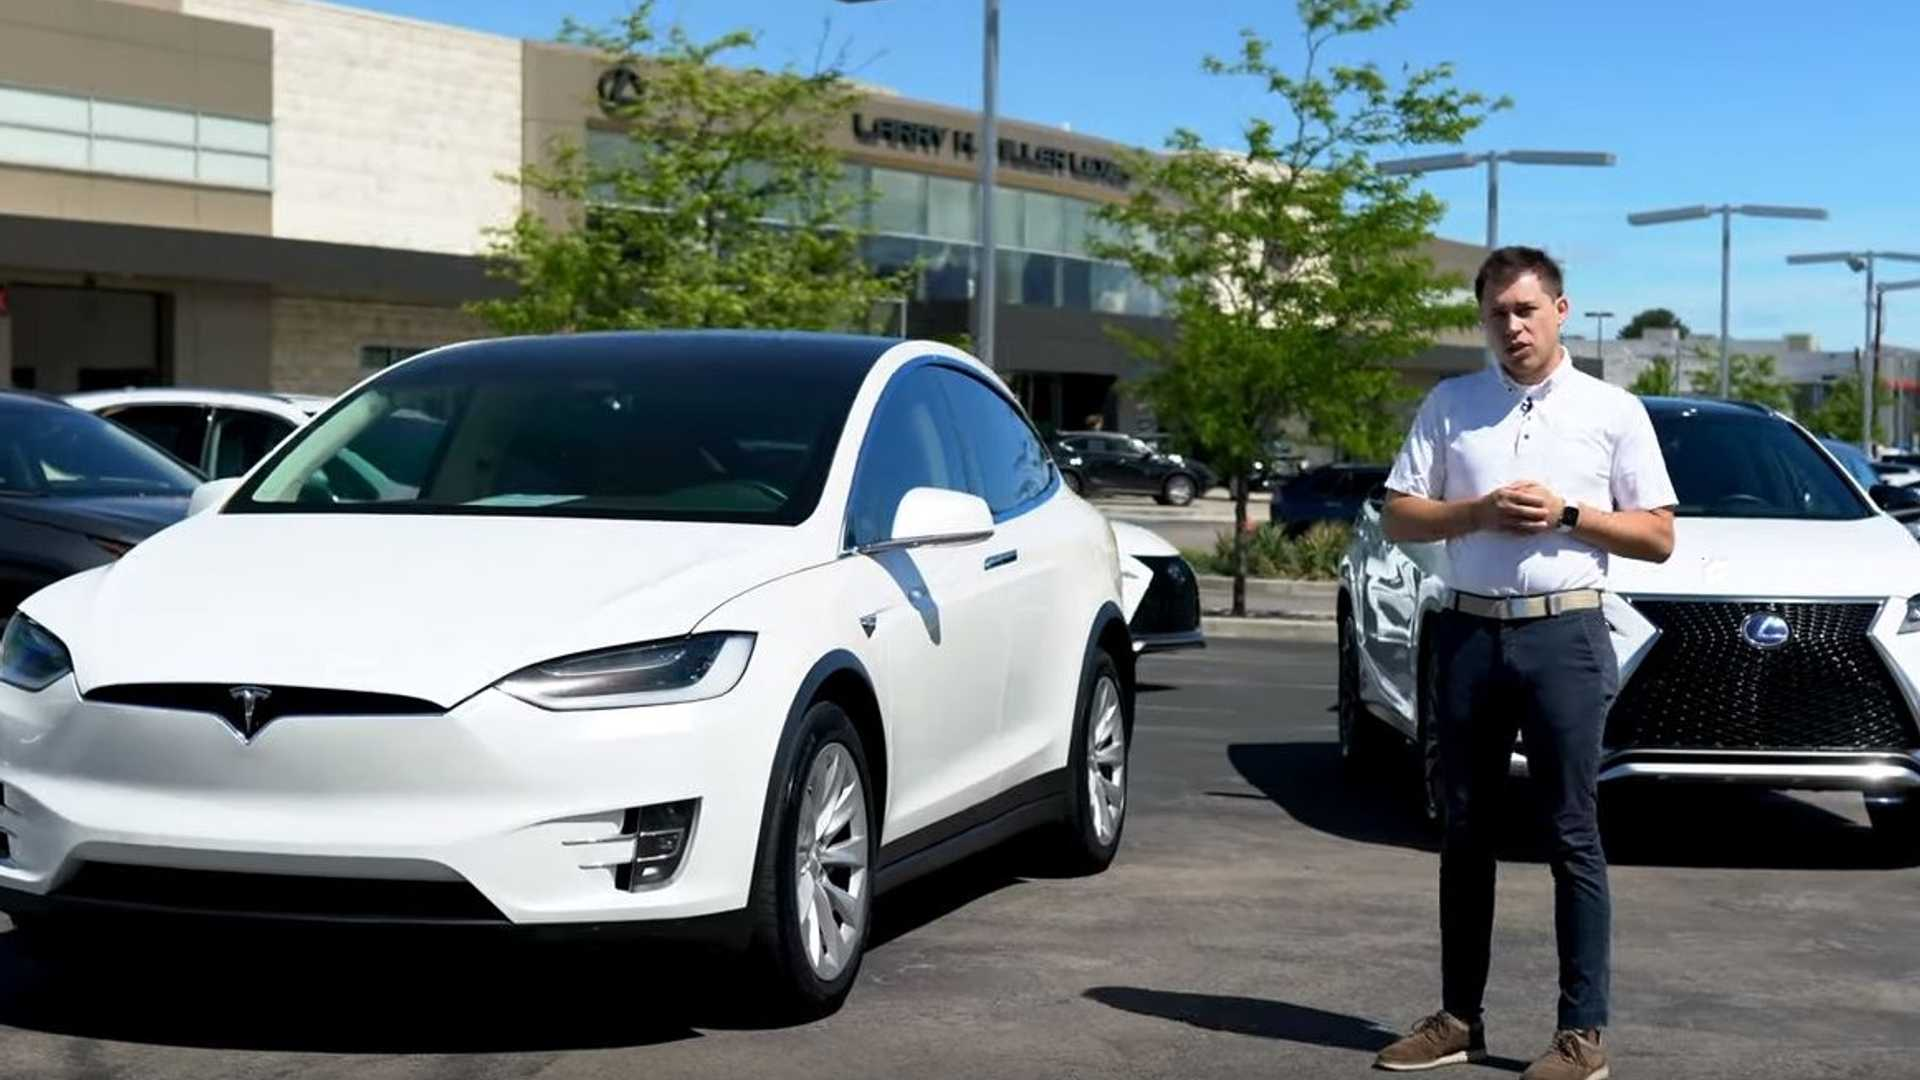 Dealership Pitches Self-Charging Lexus RX 450H Over Tesla Model X